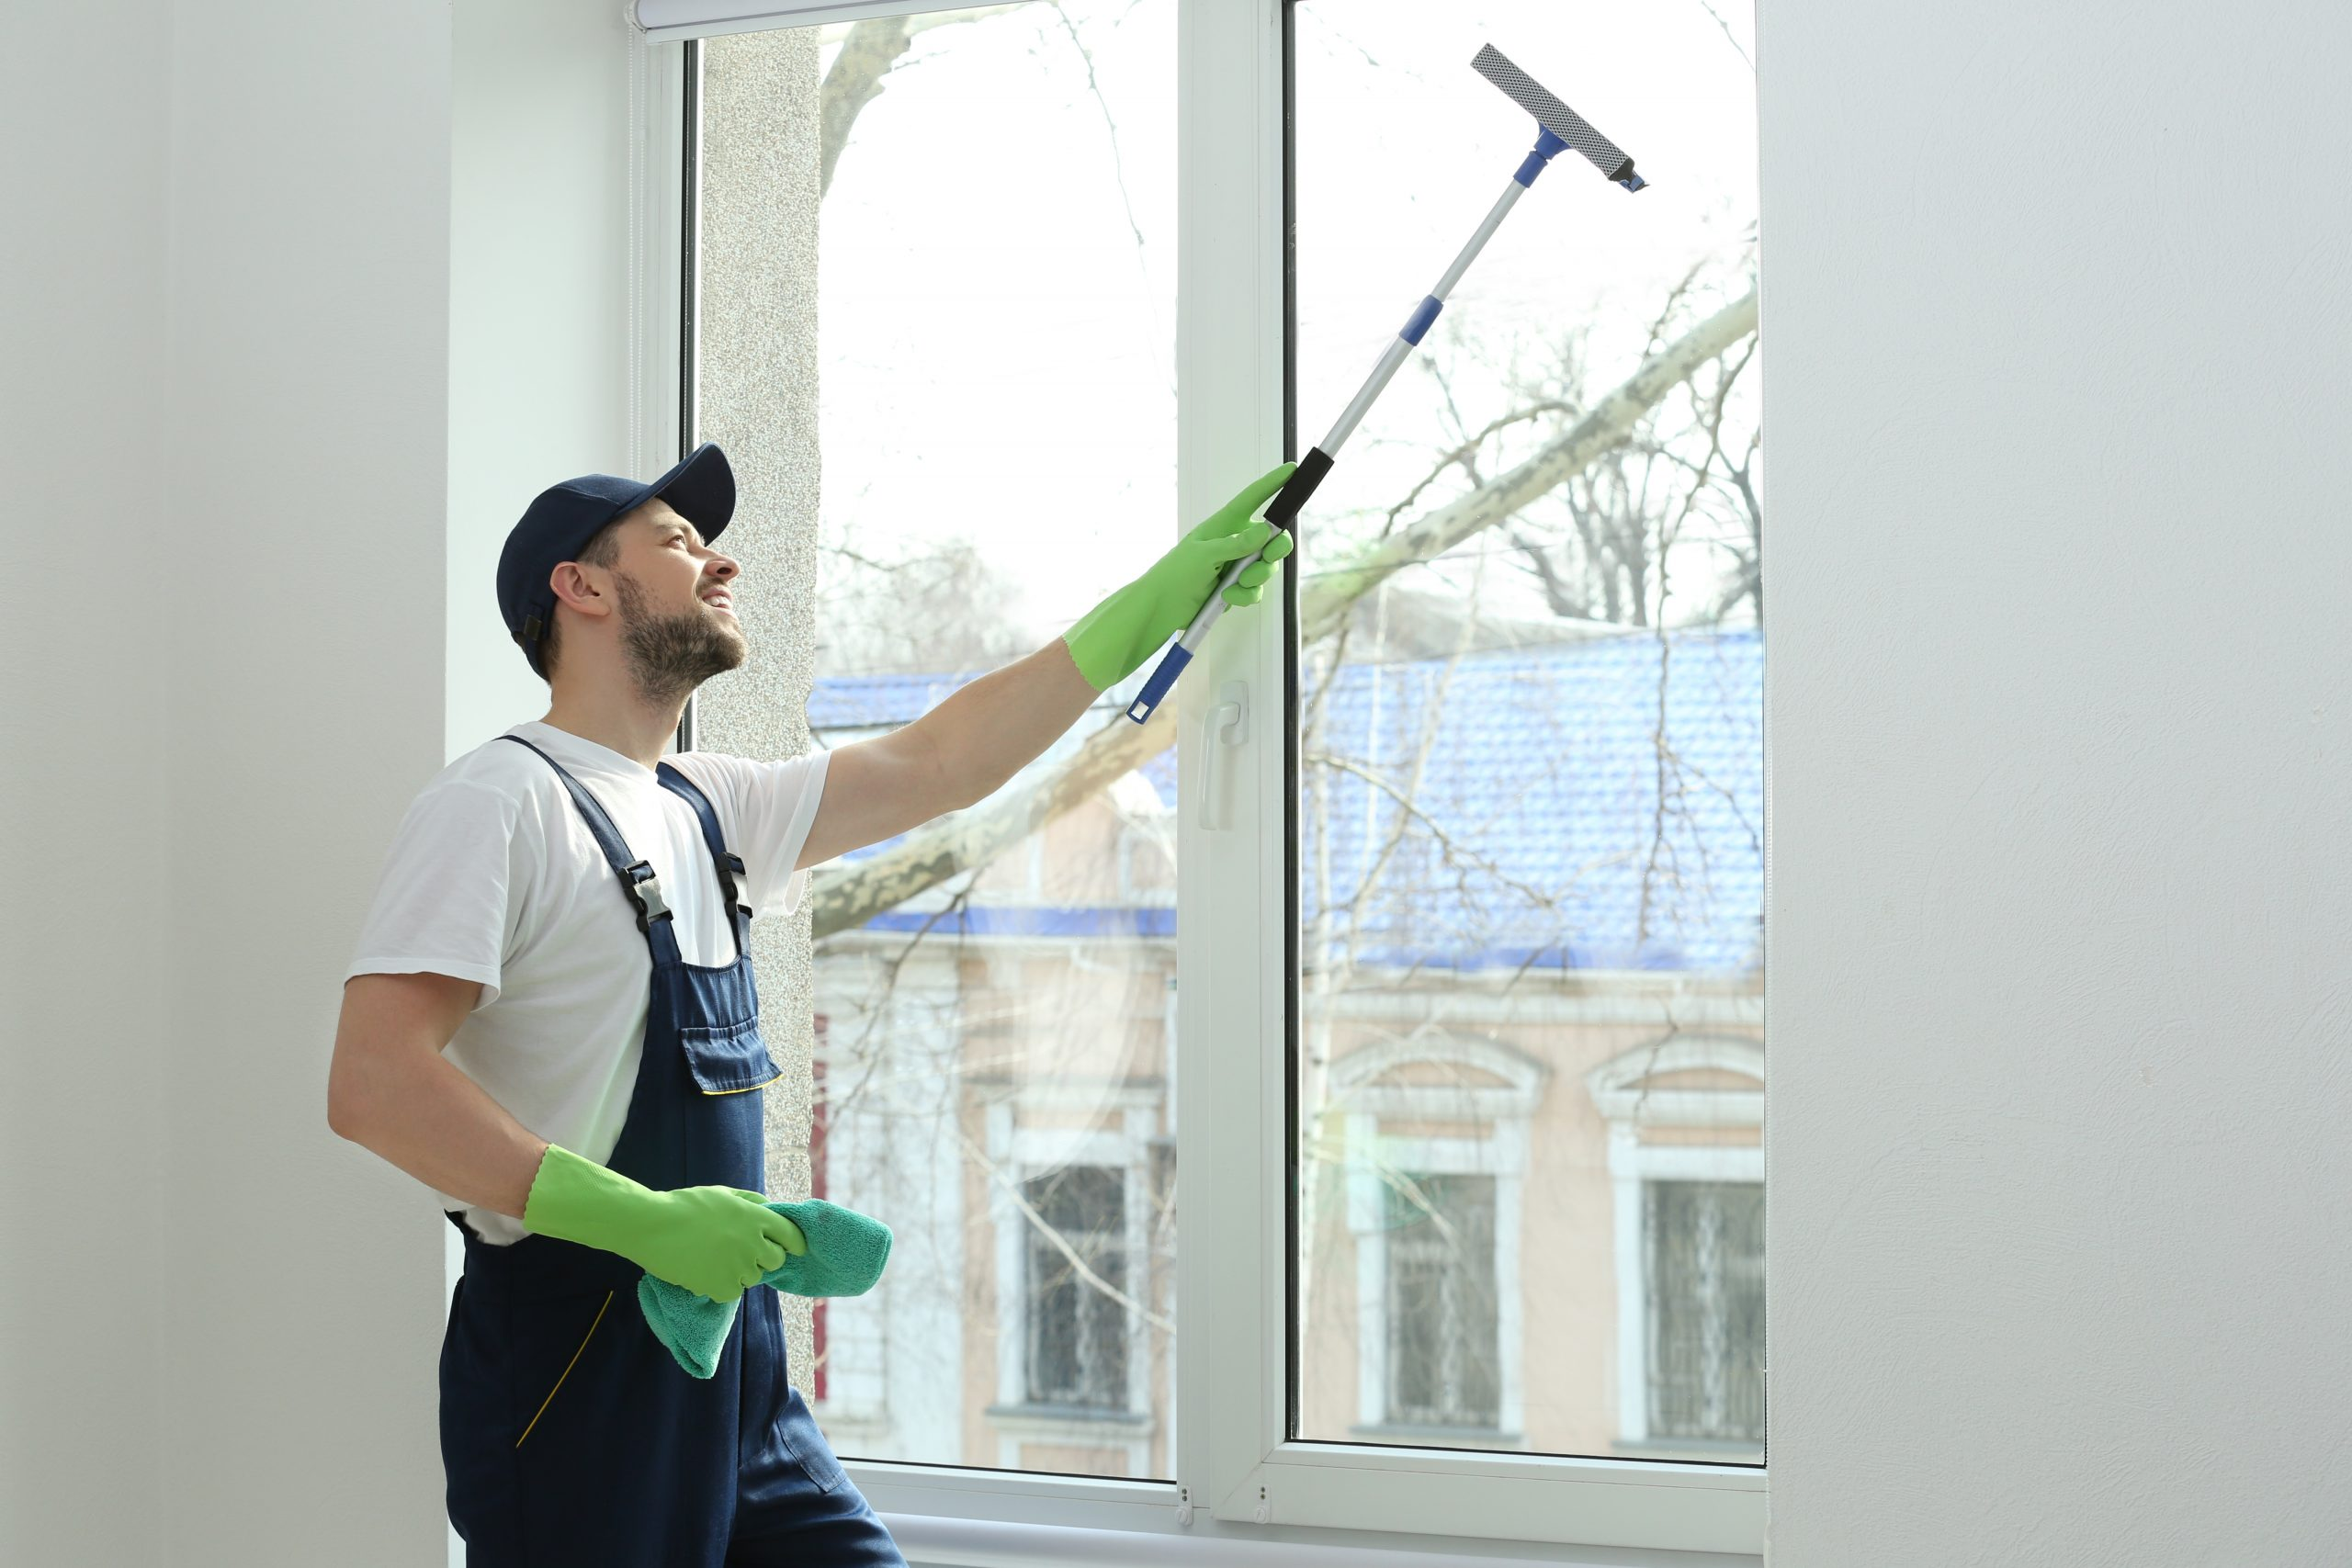 residential-window-cleaning-expert-working-on-an-interior-window